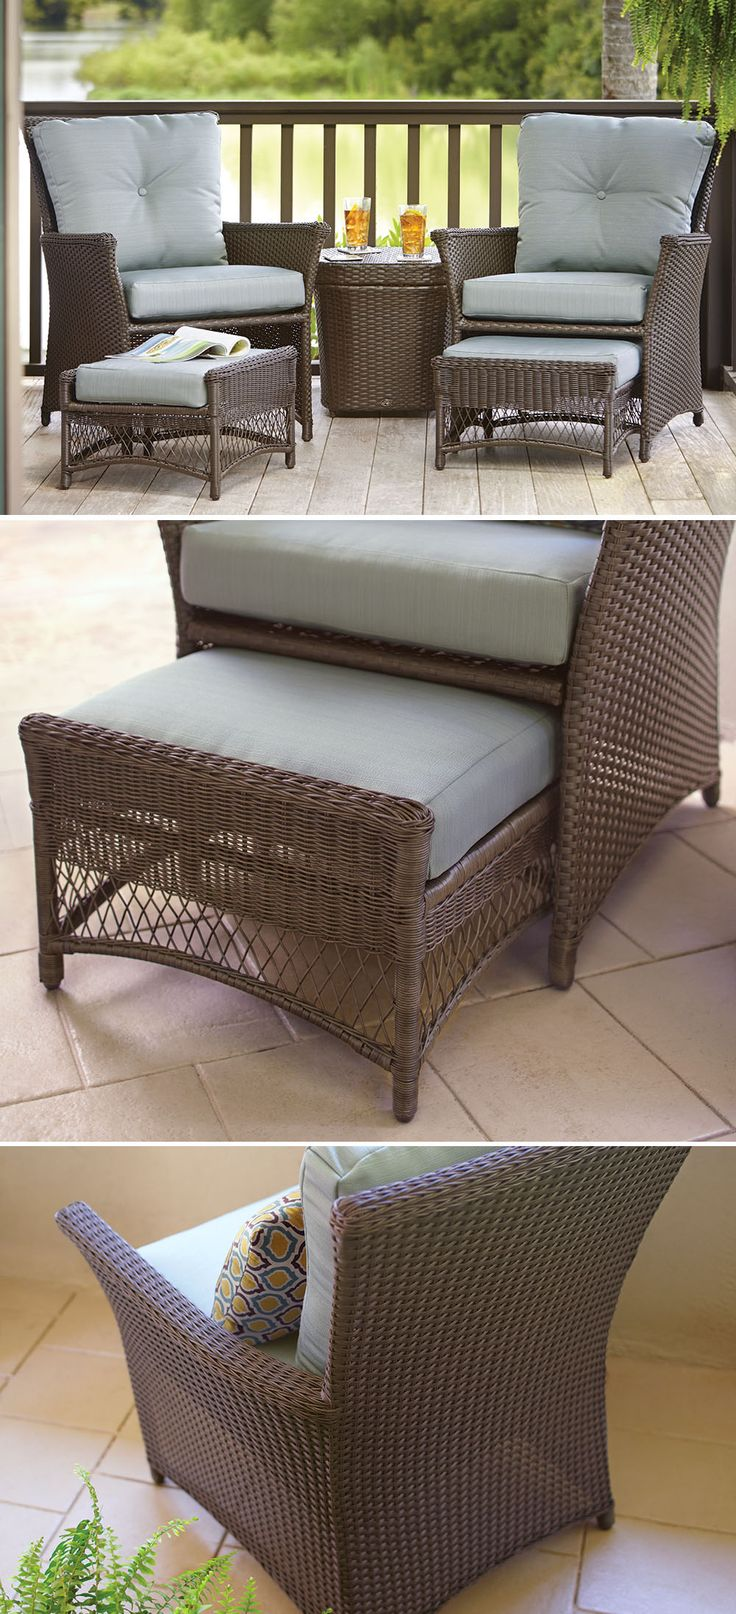 Garden gifts · This affordable patio set ...